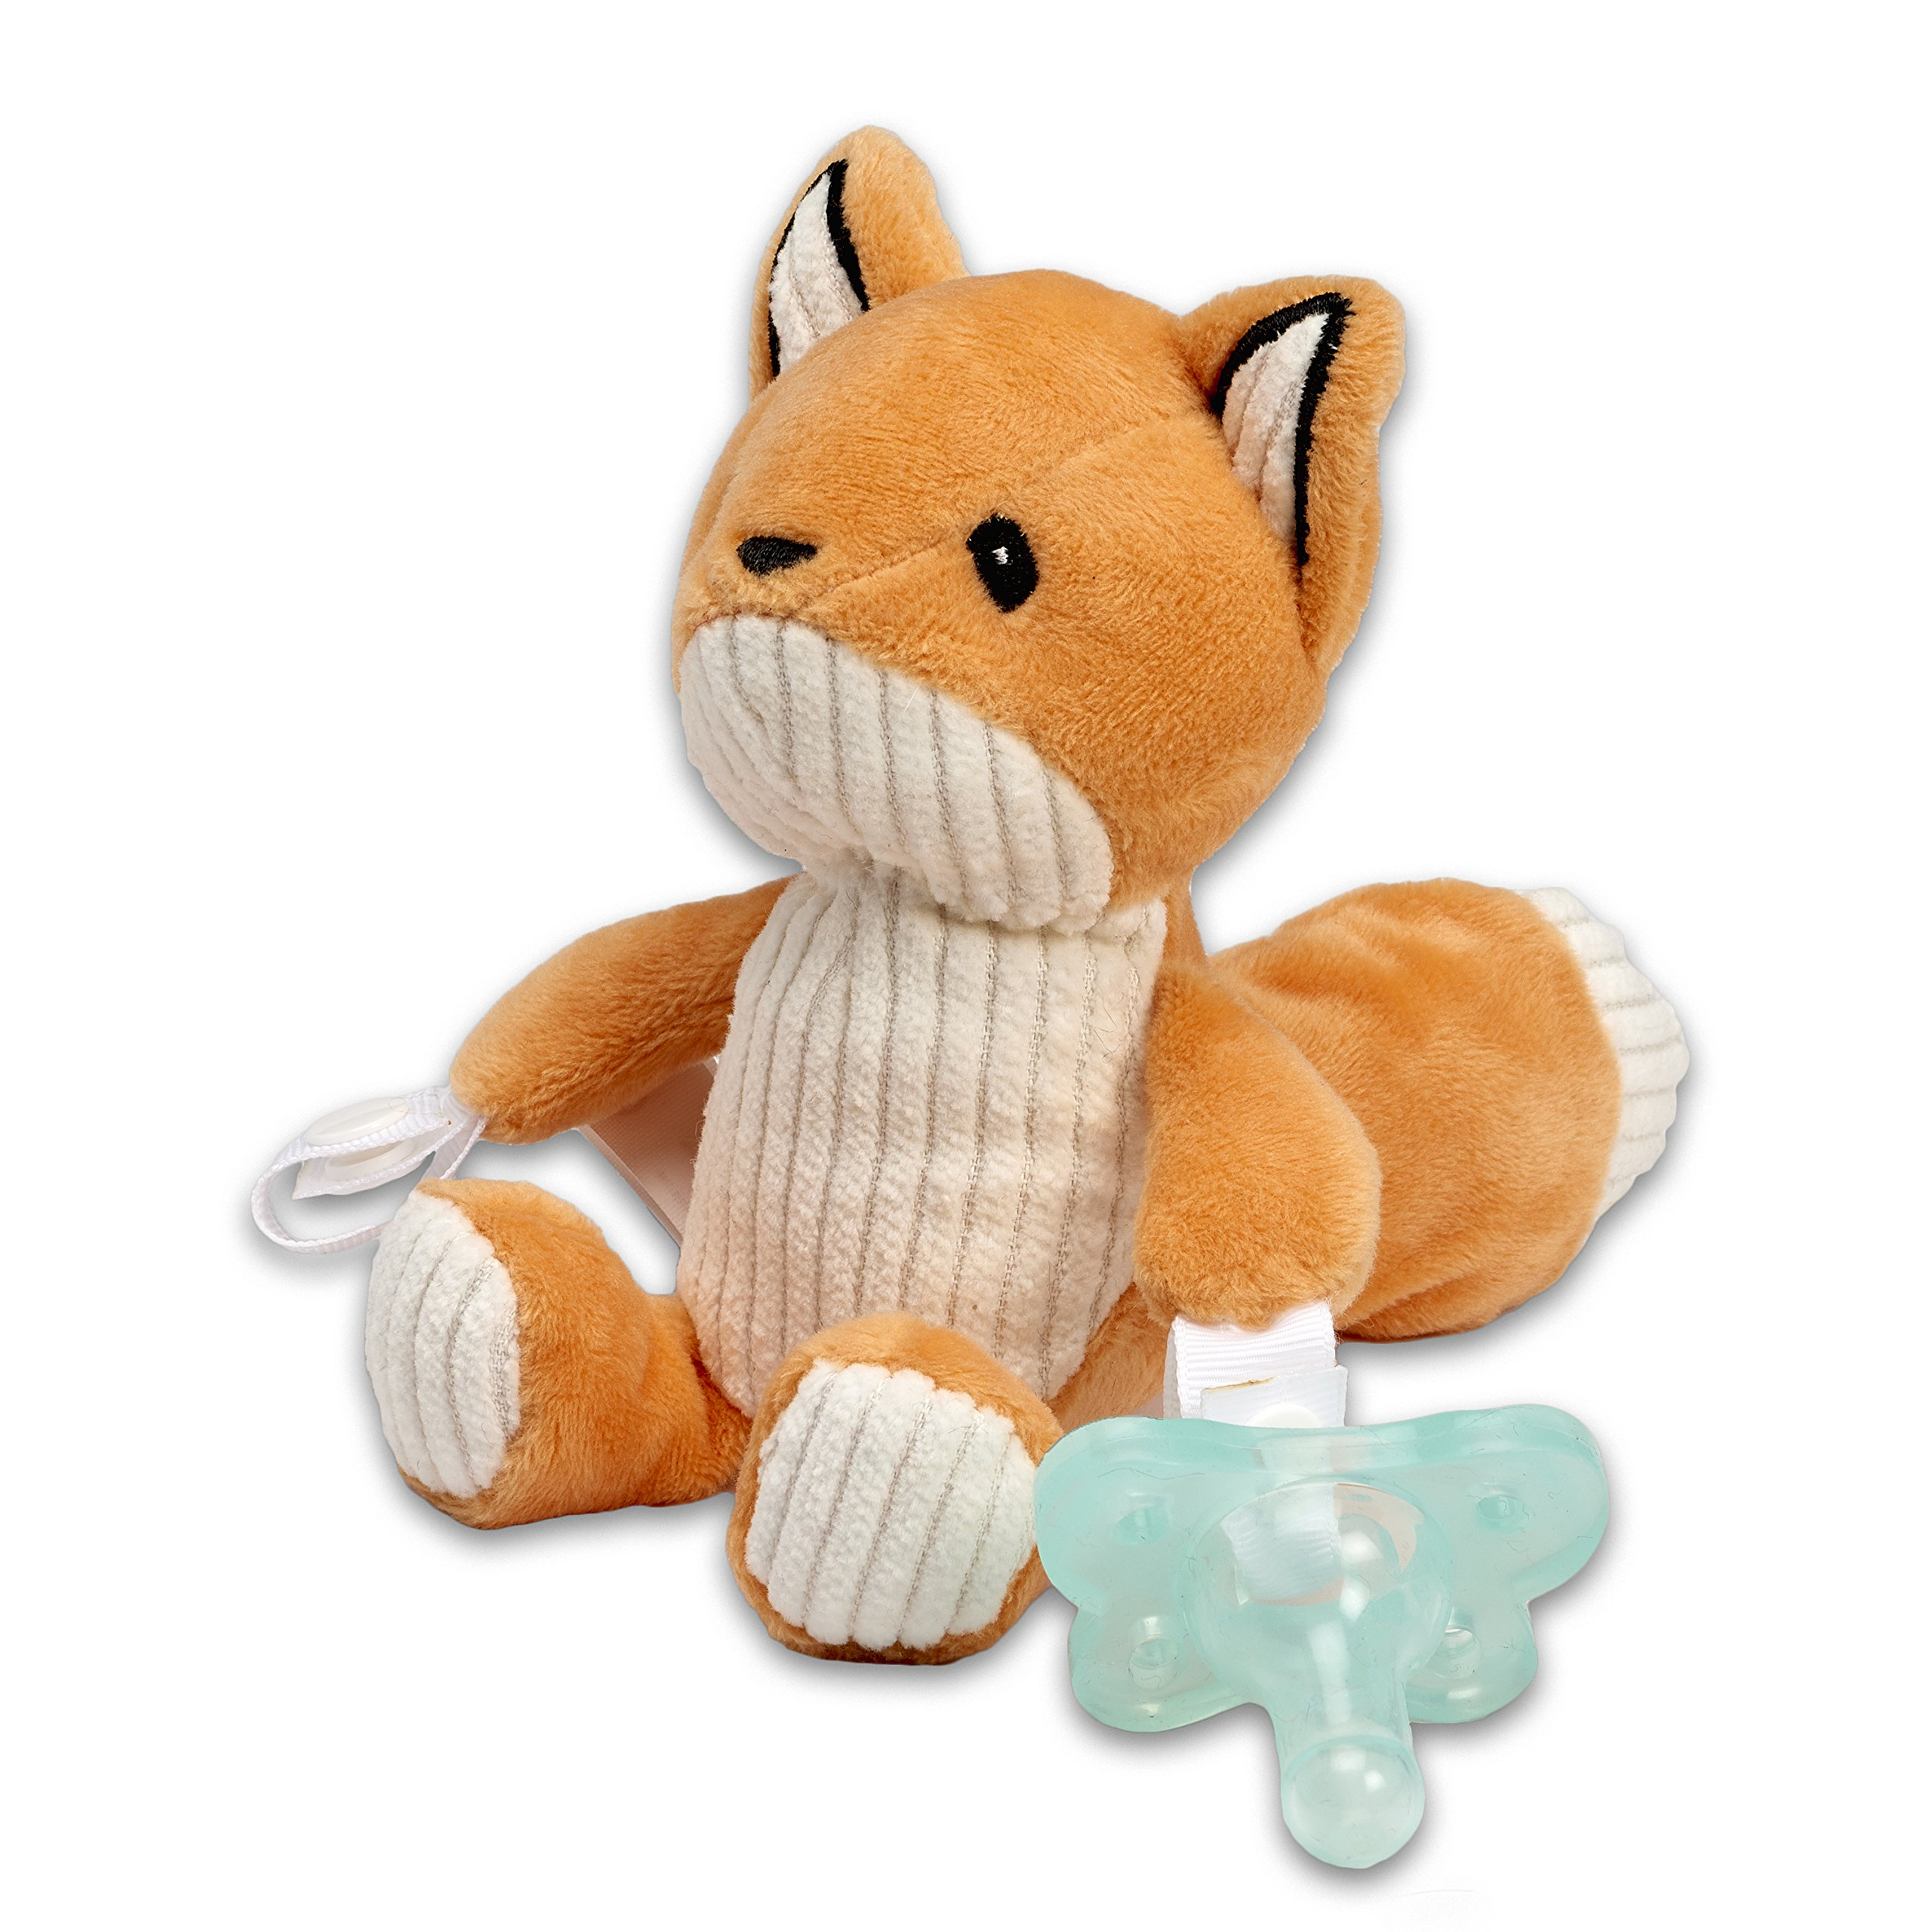 Amazon.com : Dr. Browns Lovey Pacifier and Teether Holder, 0 Months ...